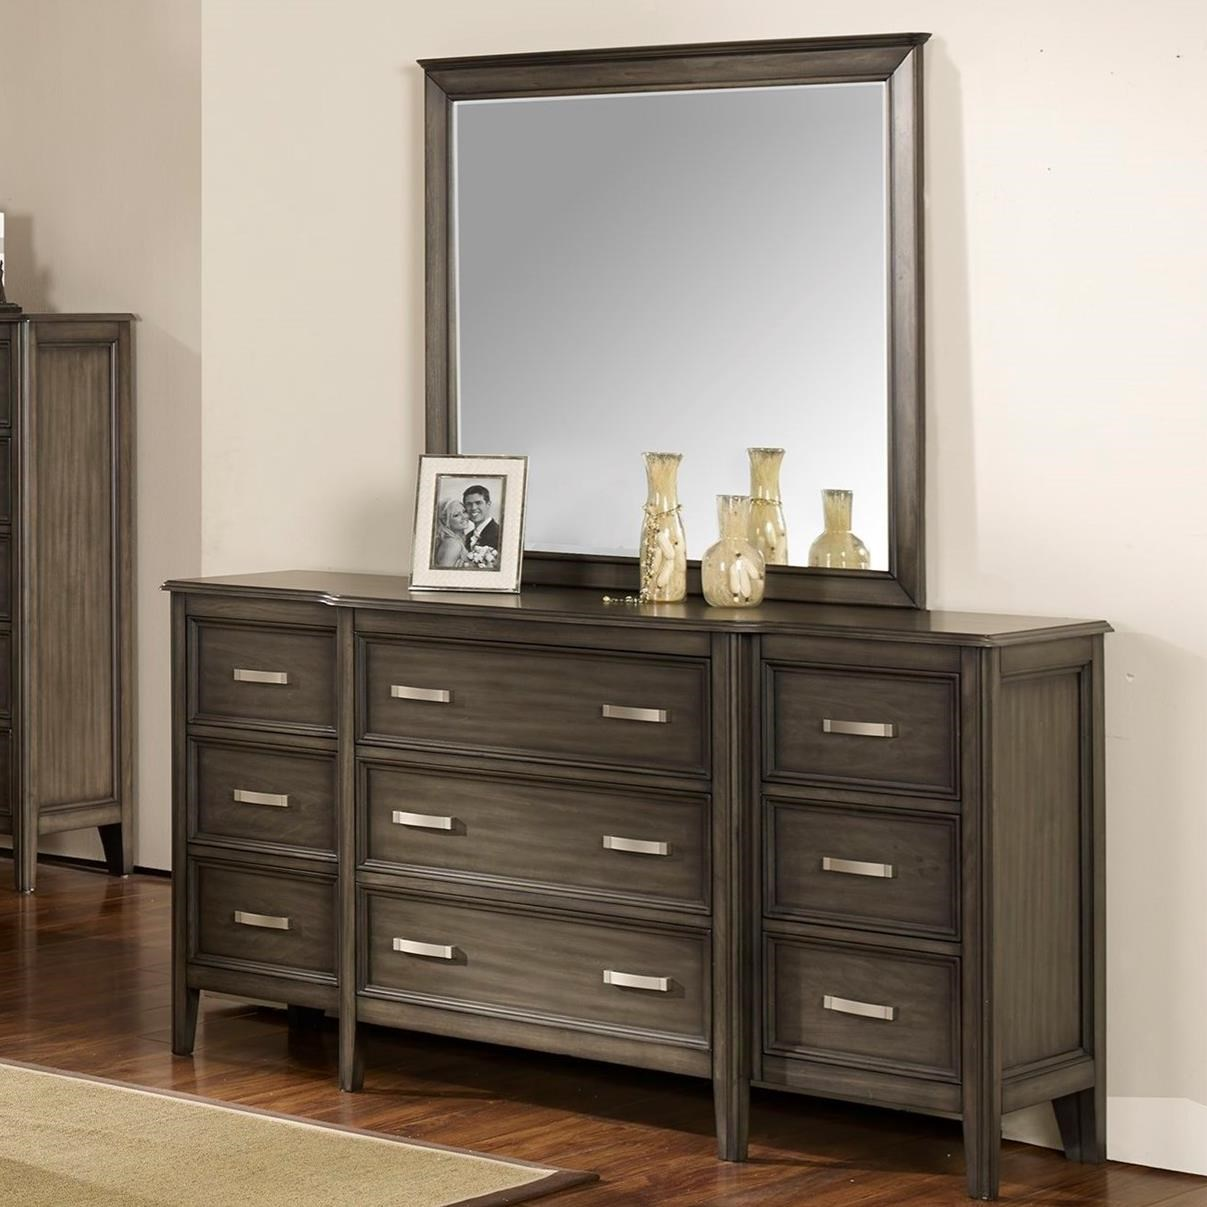 Richfield Smoke Dresser and Mirror by New Classic at Wilcox Furniture